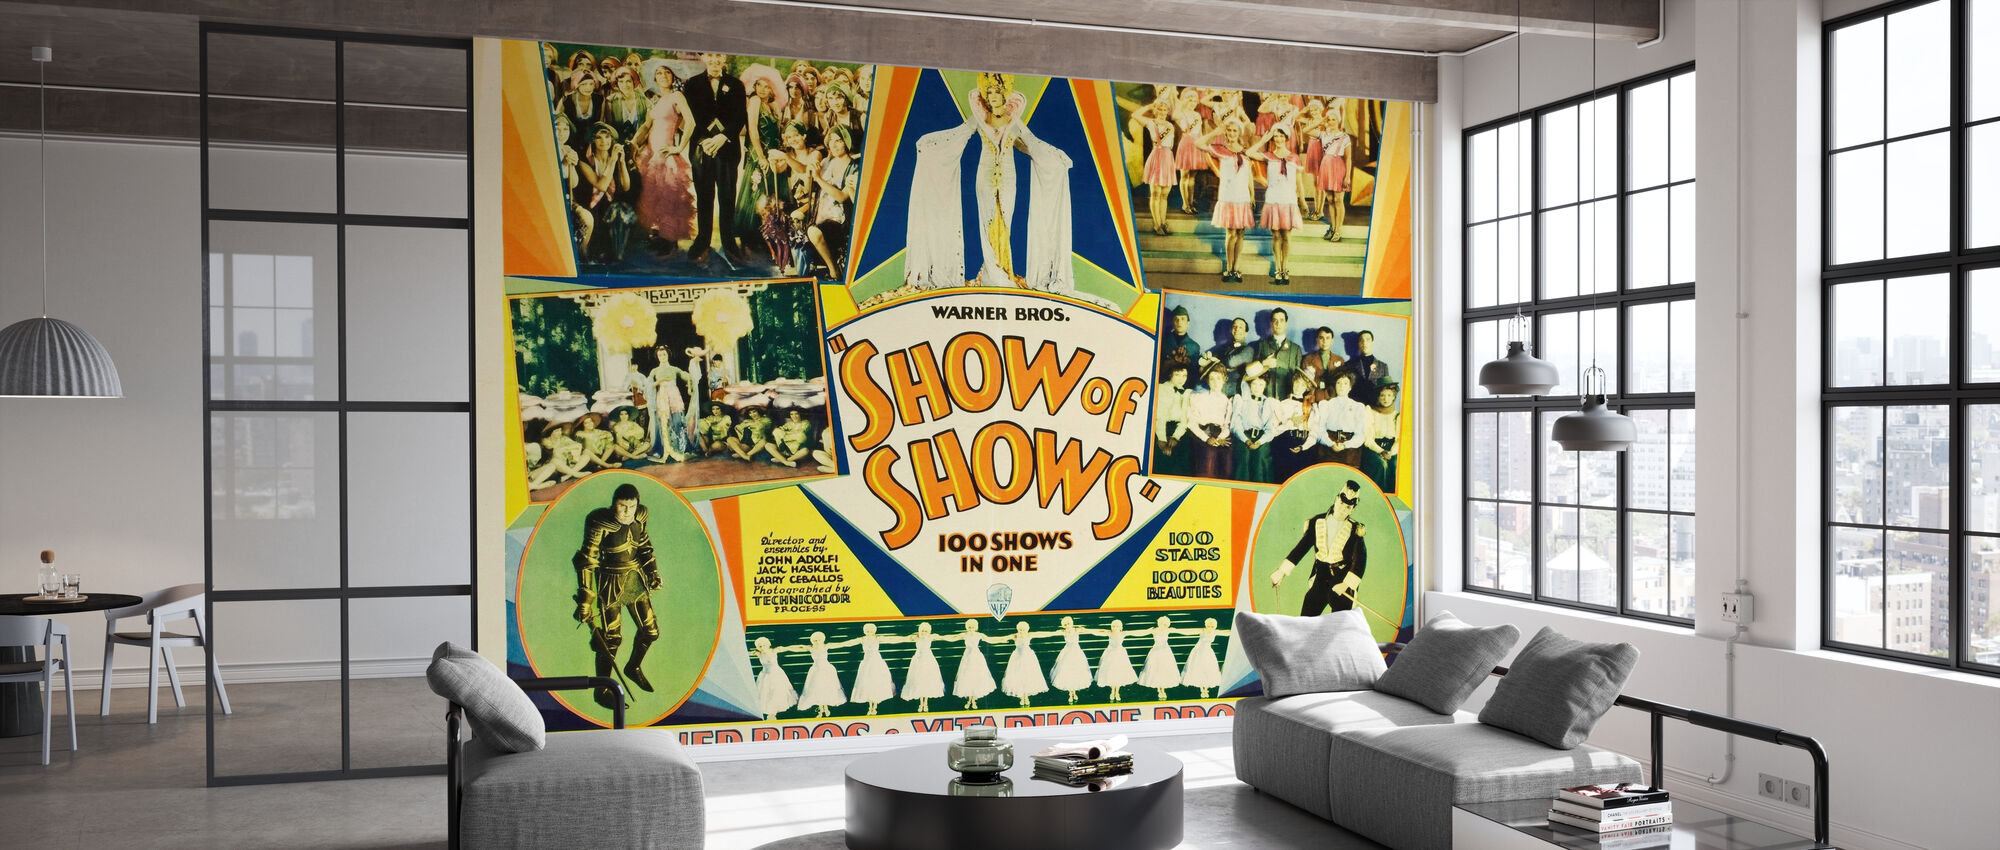 Show of Shows - Wallpaper - Office